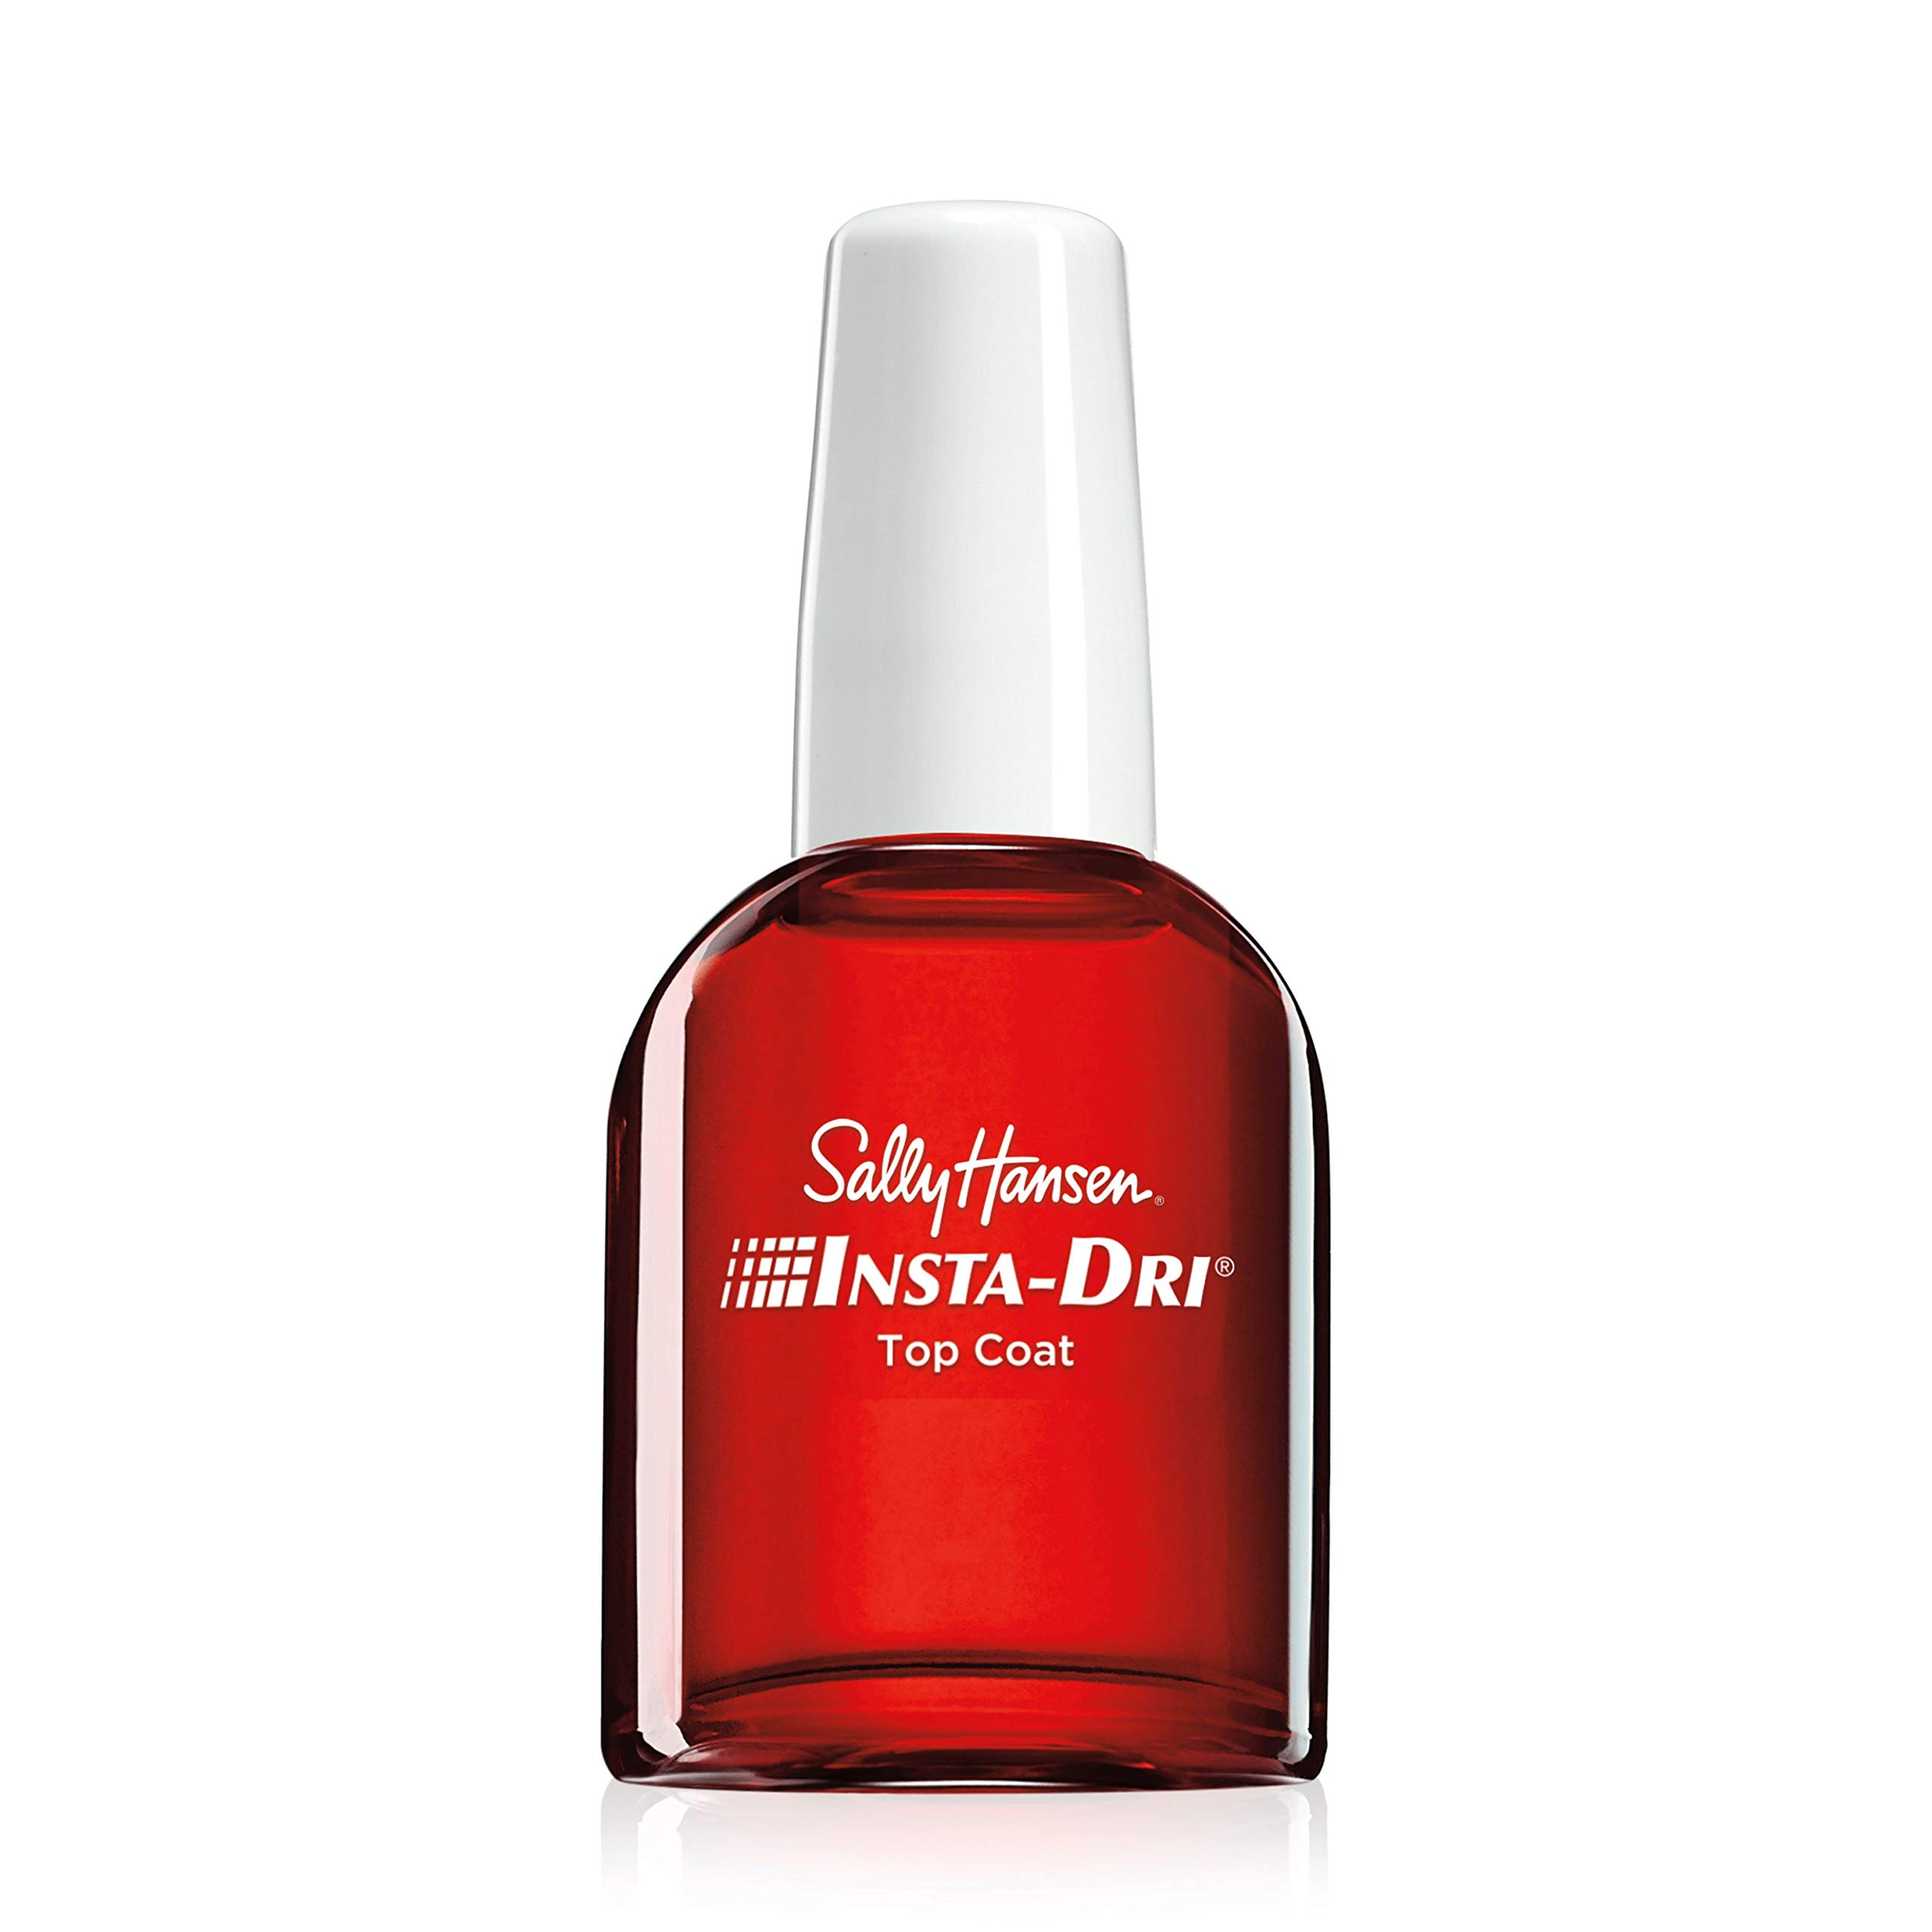 Sally Hansen Insta-Dri Anti-Chip Top Coat 45117 Clear, 0.45 Fl Ounce (Pack of 1)